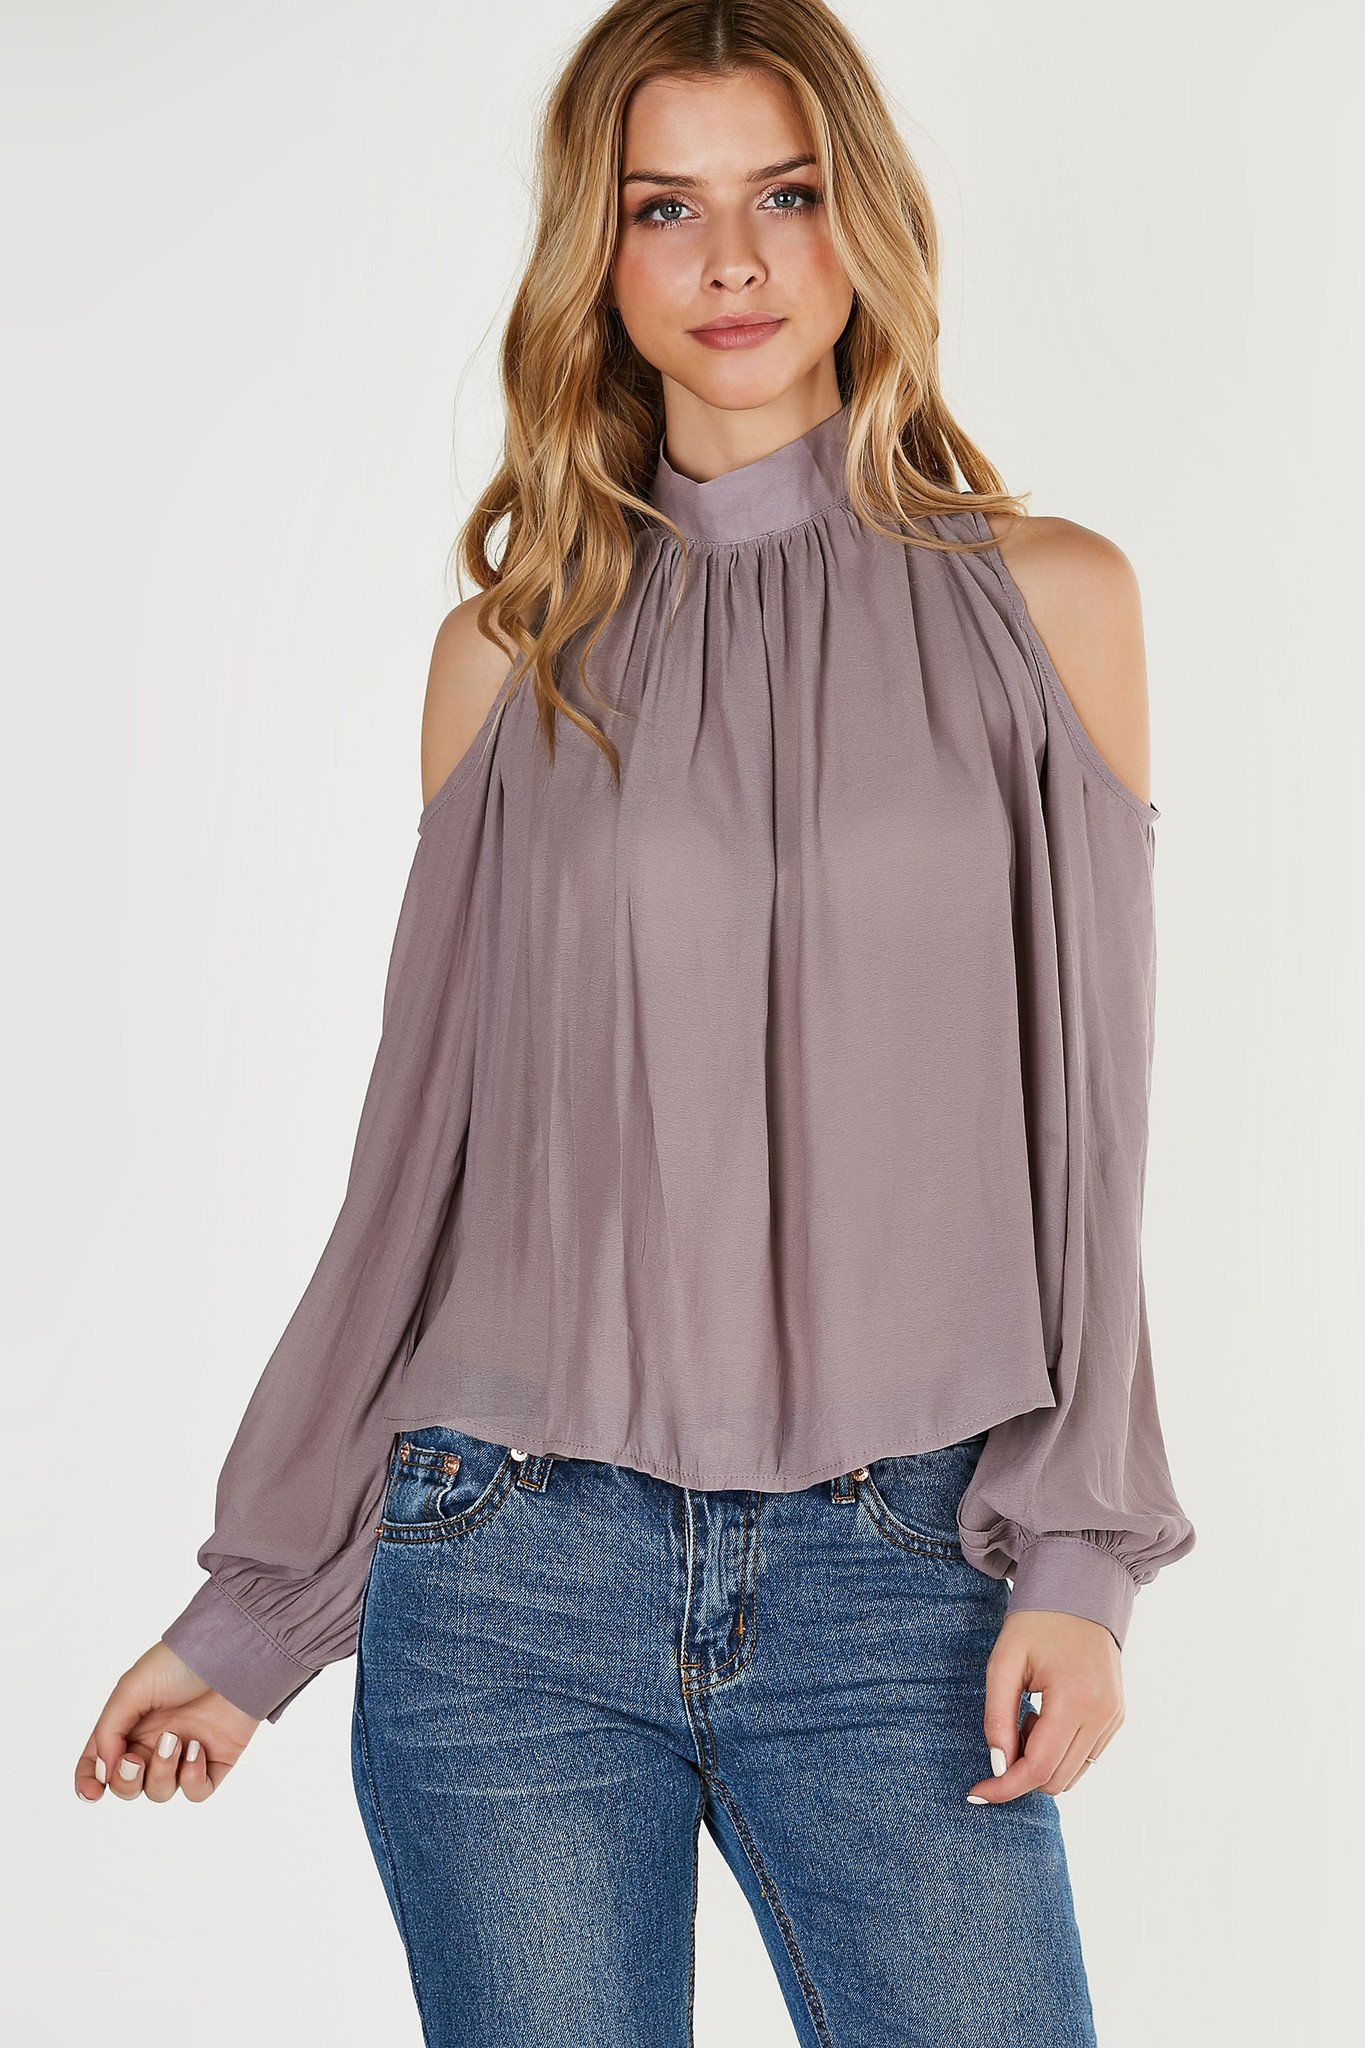 28c161c43f5b34 Chic mock neck blouse made of lightweight chiffon material. Long sleeves  with cut outs on shoulders and back.